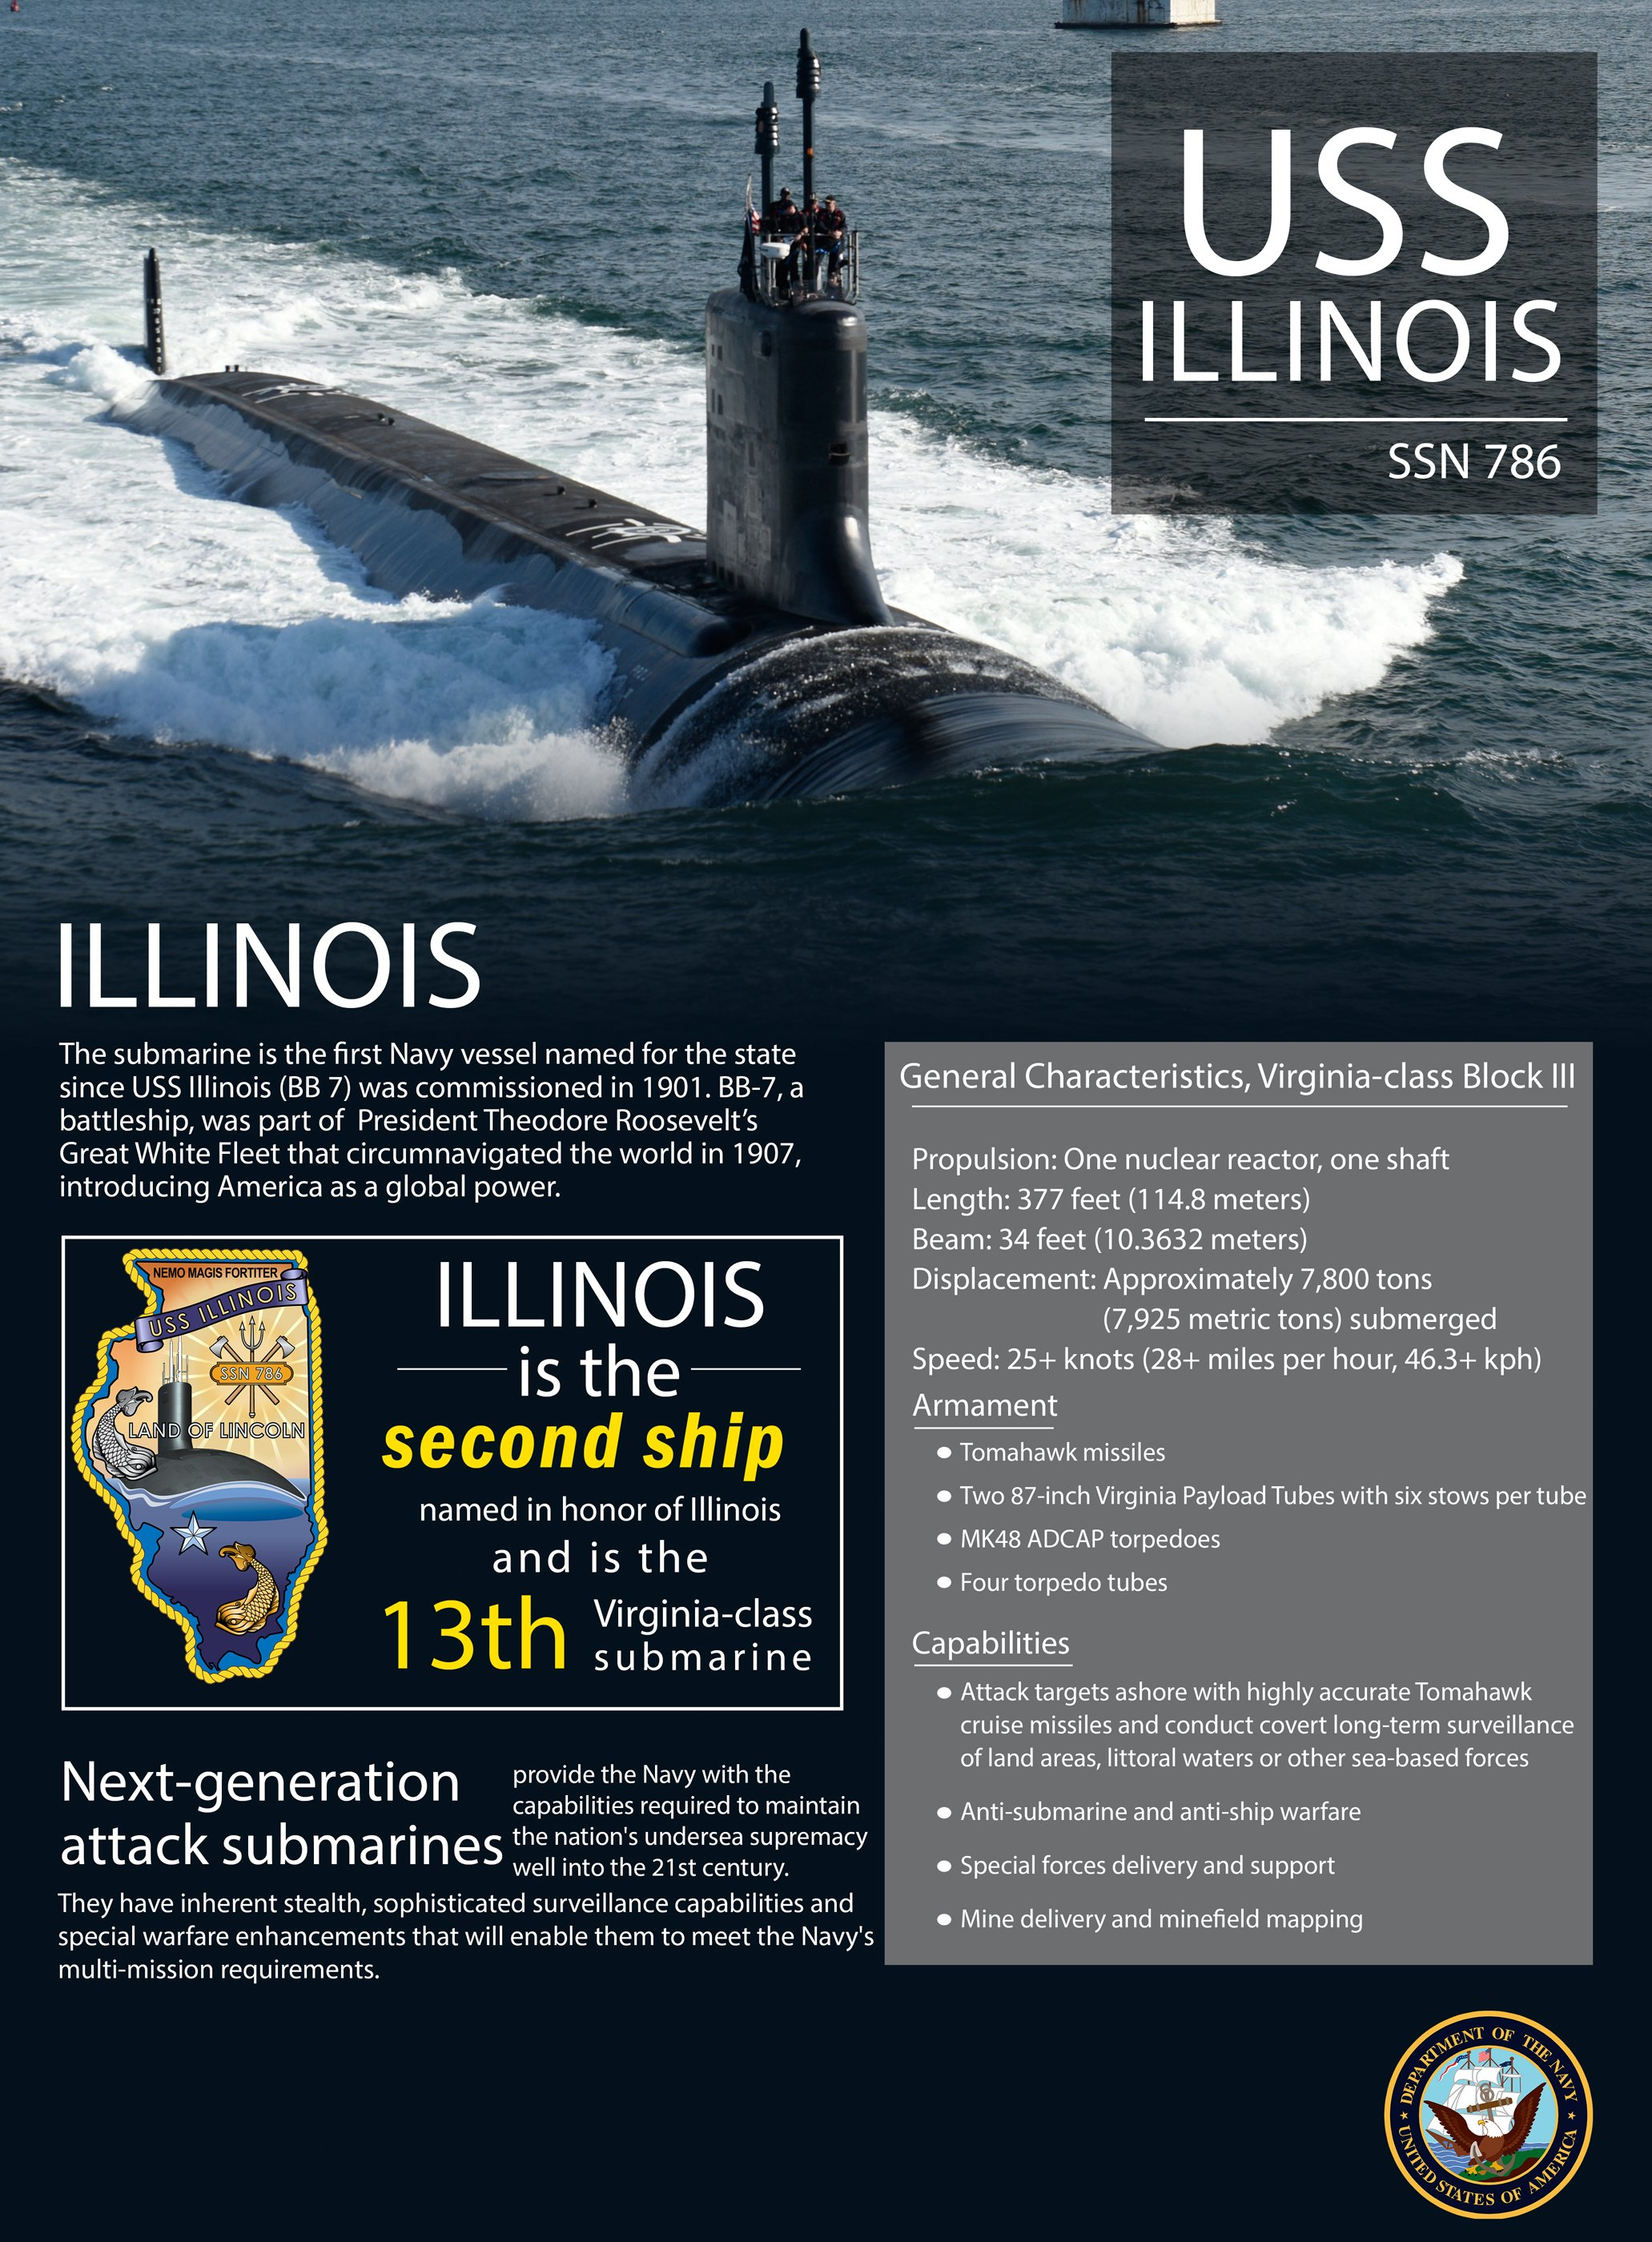 161028-N-ZI635-003 WASHINGTON (Oct. 28, 2016) An informational graphic describing the Virginia-class attack submarine USS Illinois (SSN 786). The boat will be commissioned Oct. 29 in Groton, Conn. (U.S. Navy graphic illustration by Petty Officer 2nd Class George M. Bell/Released)